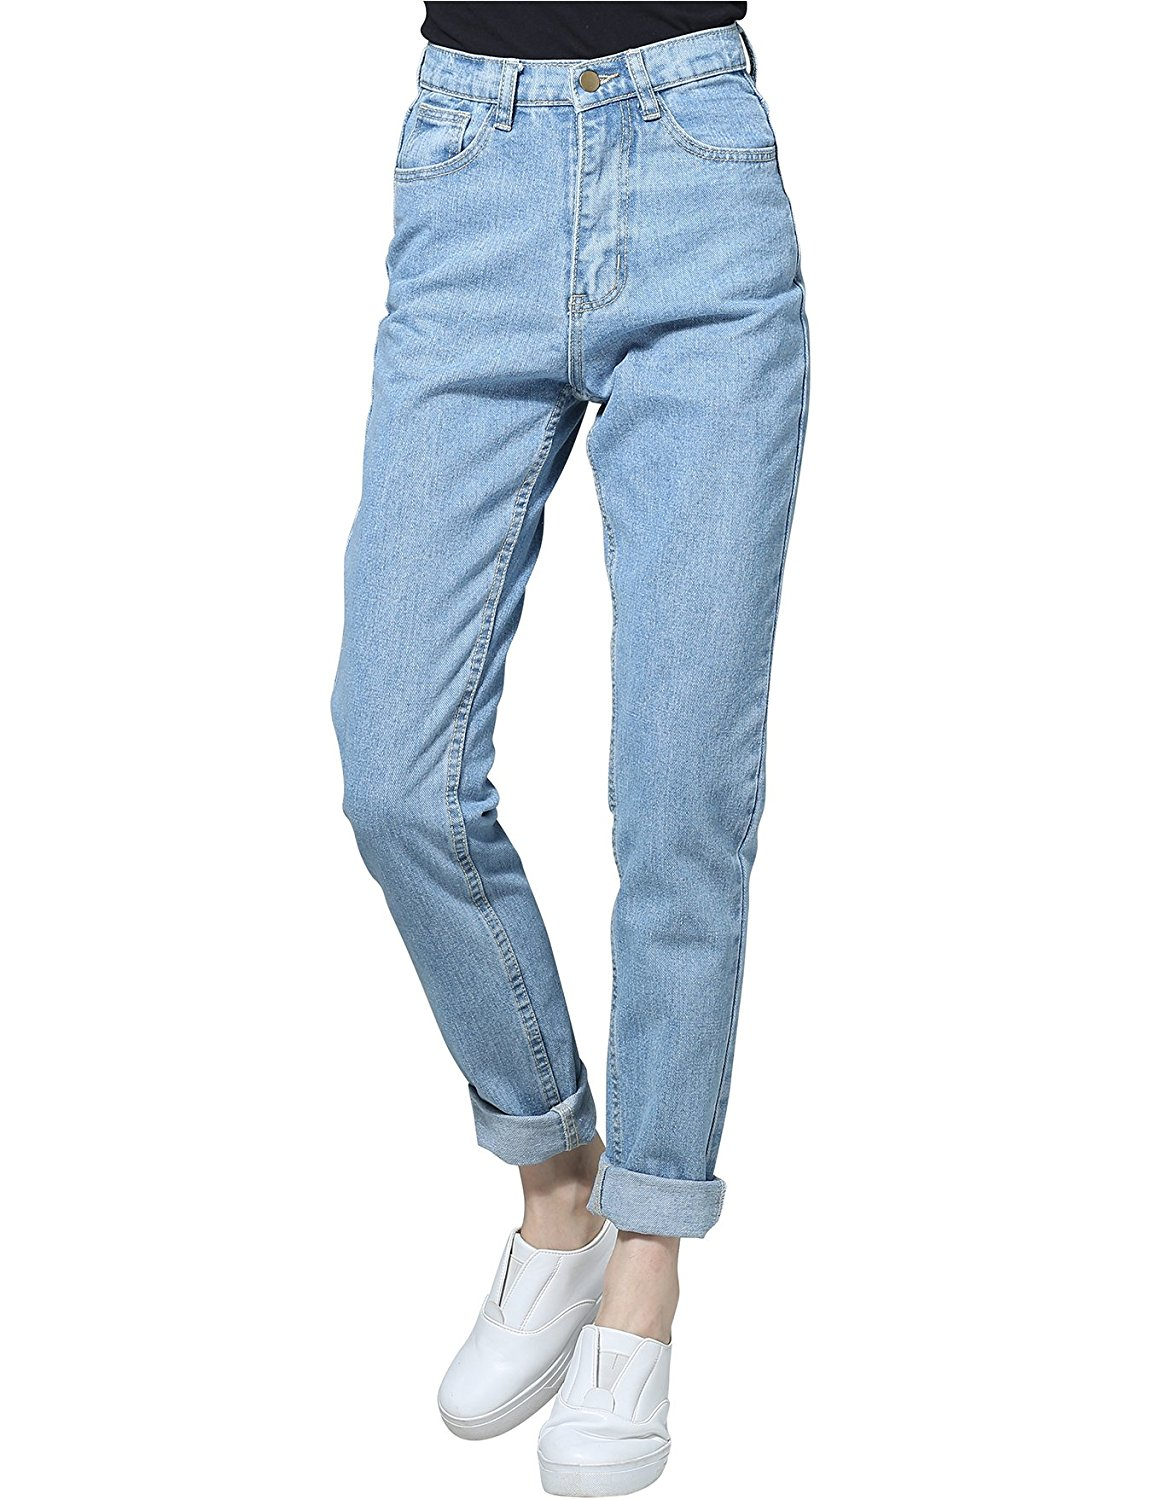 a31c511aed799 Cheap Mom Jeans For Sale, find Mom Jeans For Sale deals on line at ...